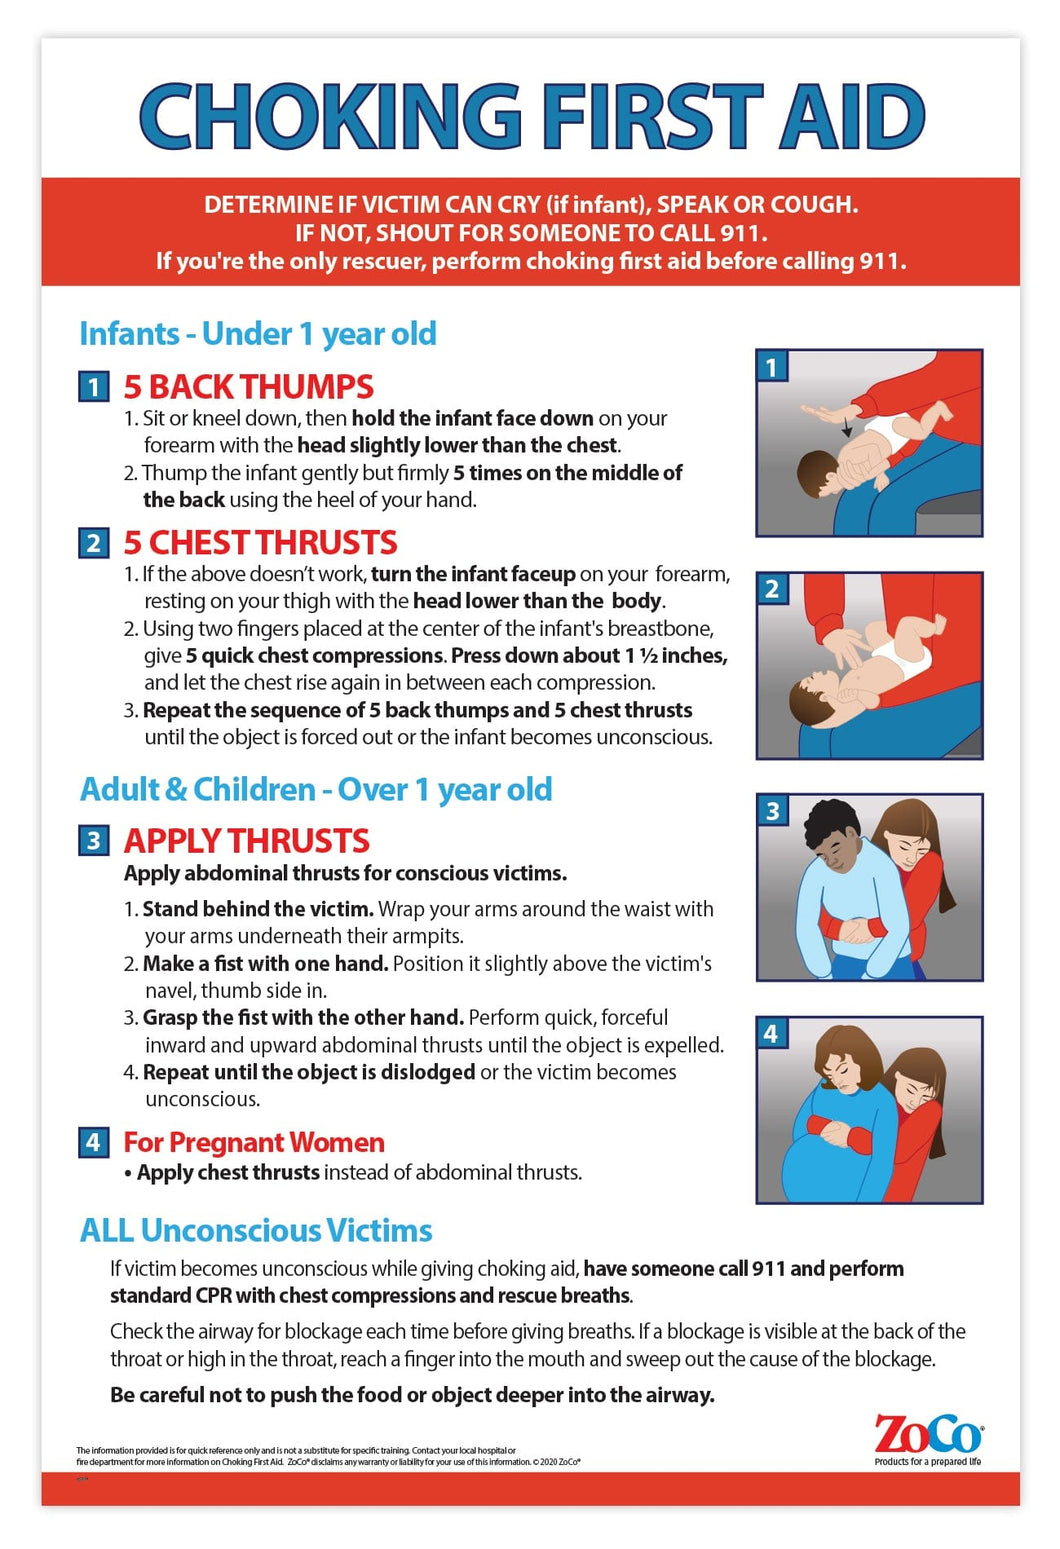 Choking First Aid Poster - Heimlich Maneuver for Infants, Children & Adults - Laminated